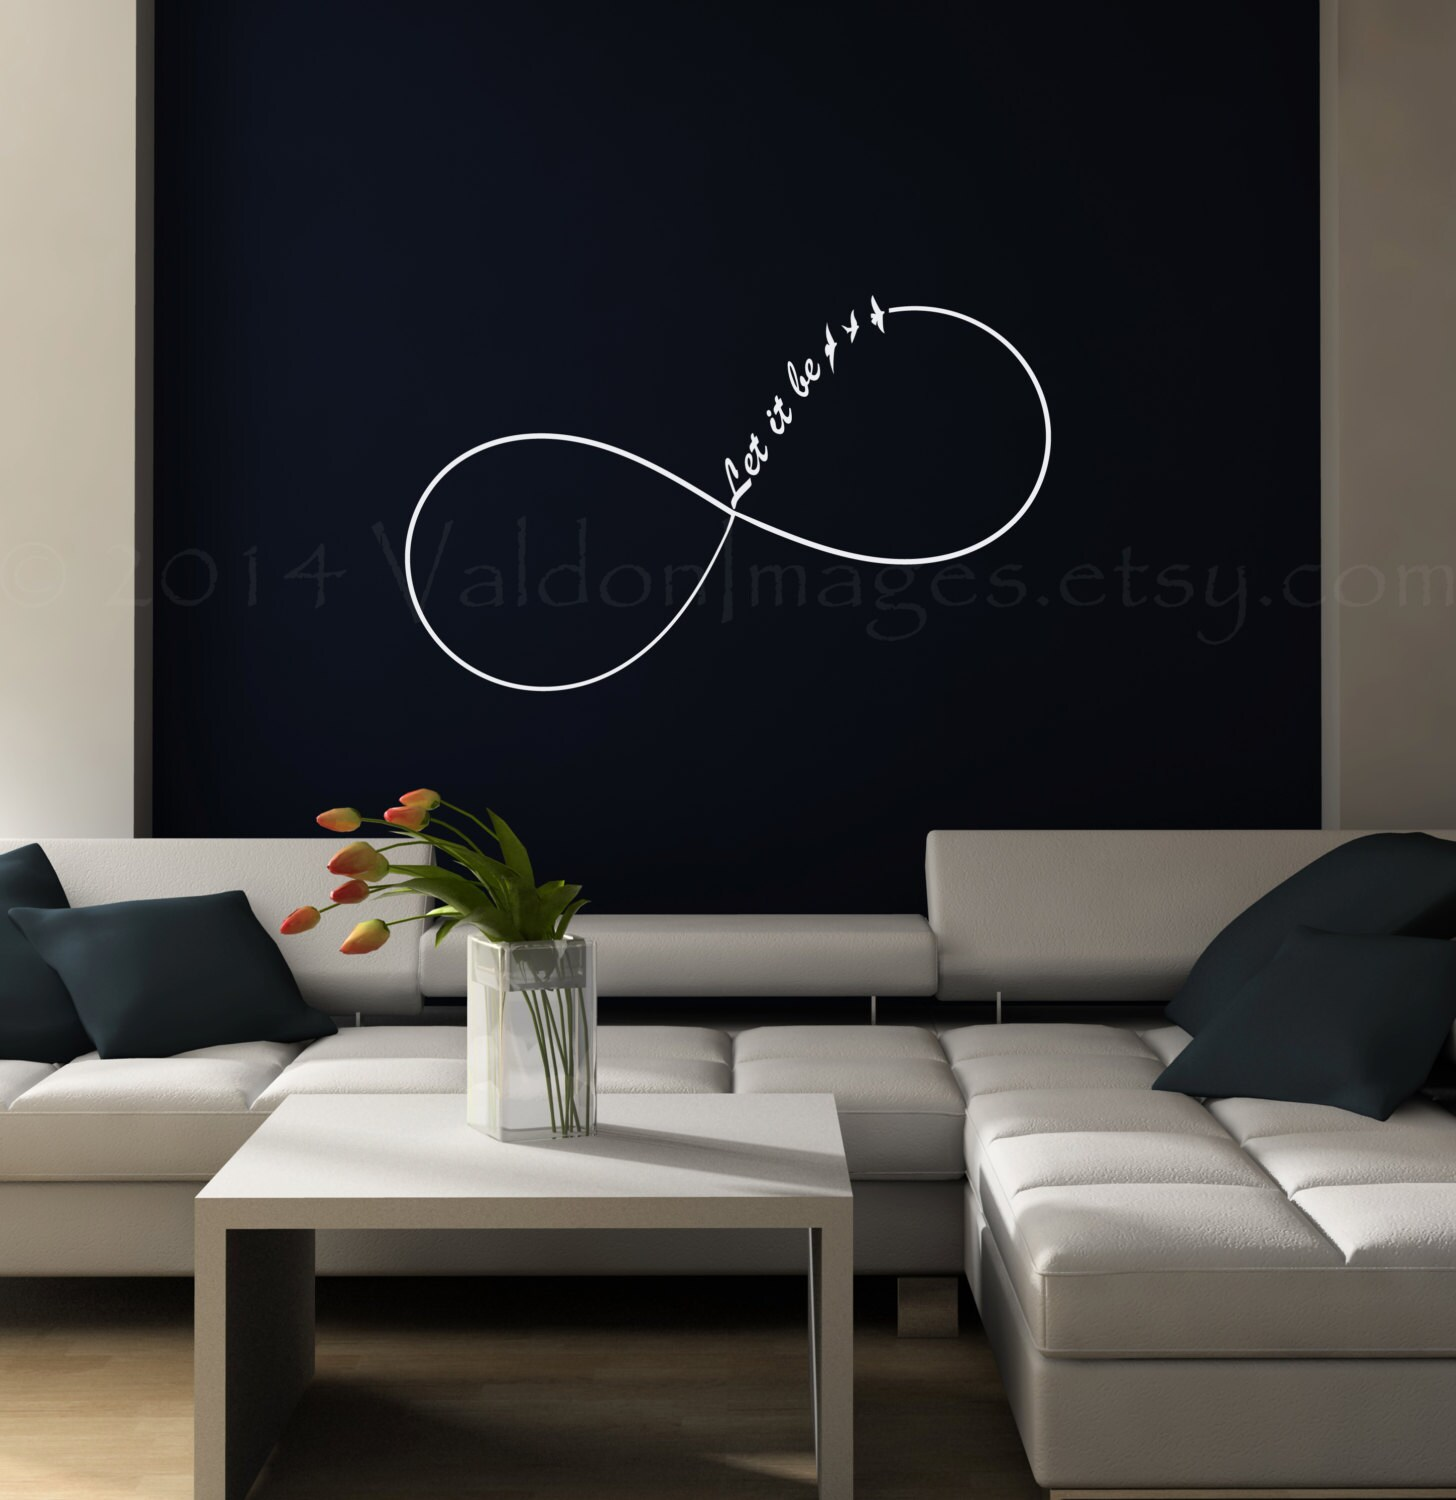 Infinity Let It Be Wall Decal Dorm Room Decor Bedroom